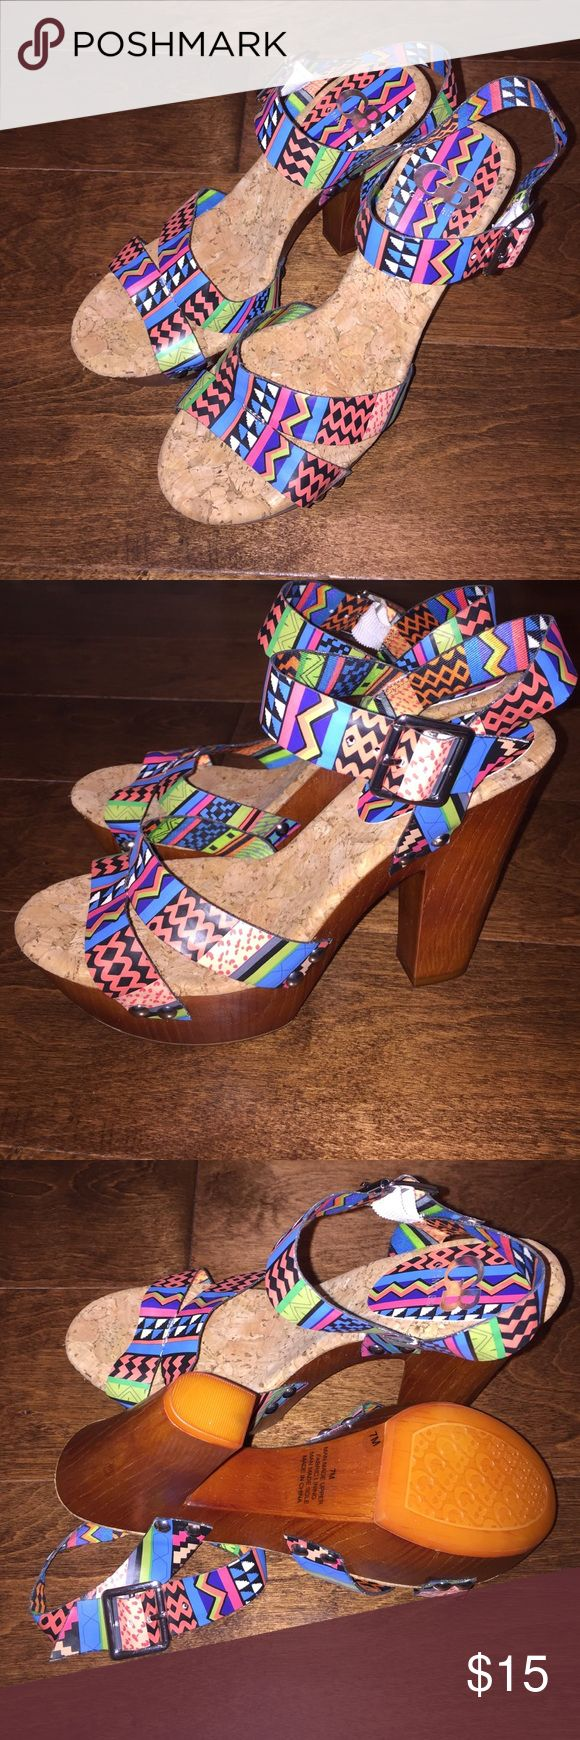 saleGianni Bini platform Aztec Heels These are bright colorful and go with everything !! Love GB Gianni Bini and these don't disappoint ! Never worn size 7. Gianni Bini Shoes Platforms